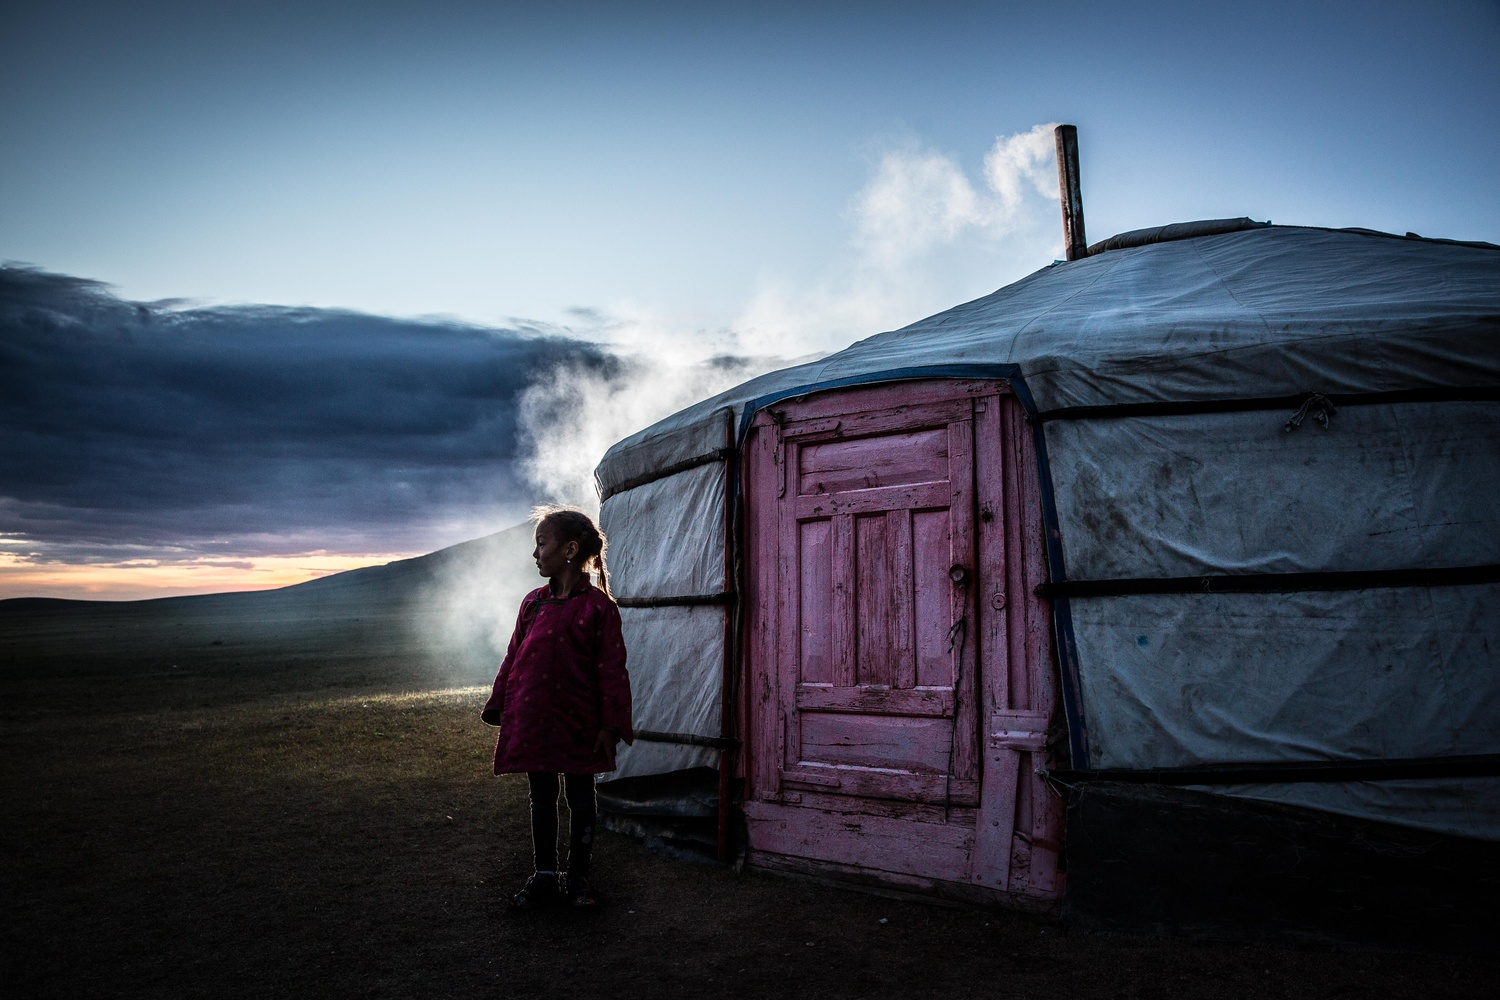 Nomadic girl at sunset by Todd Rafalovich